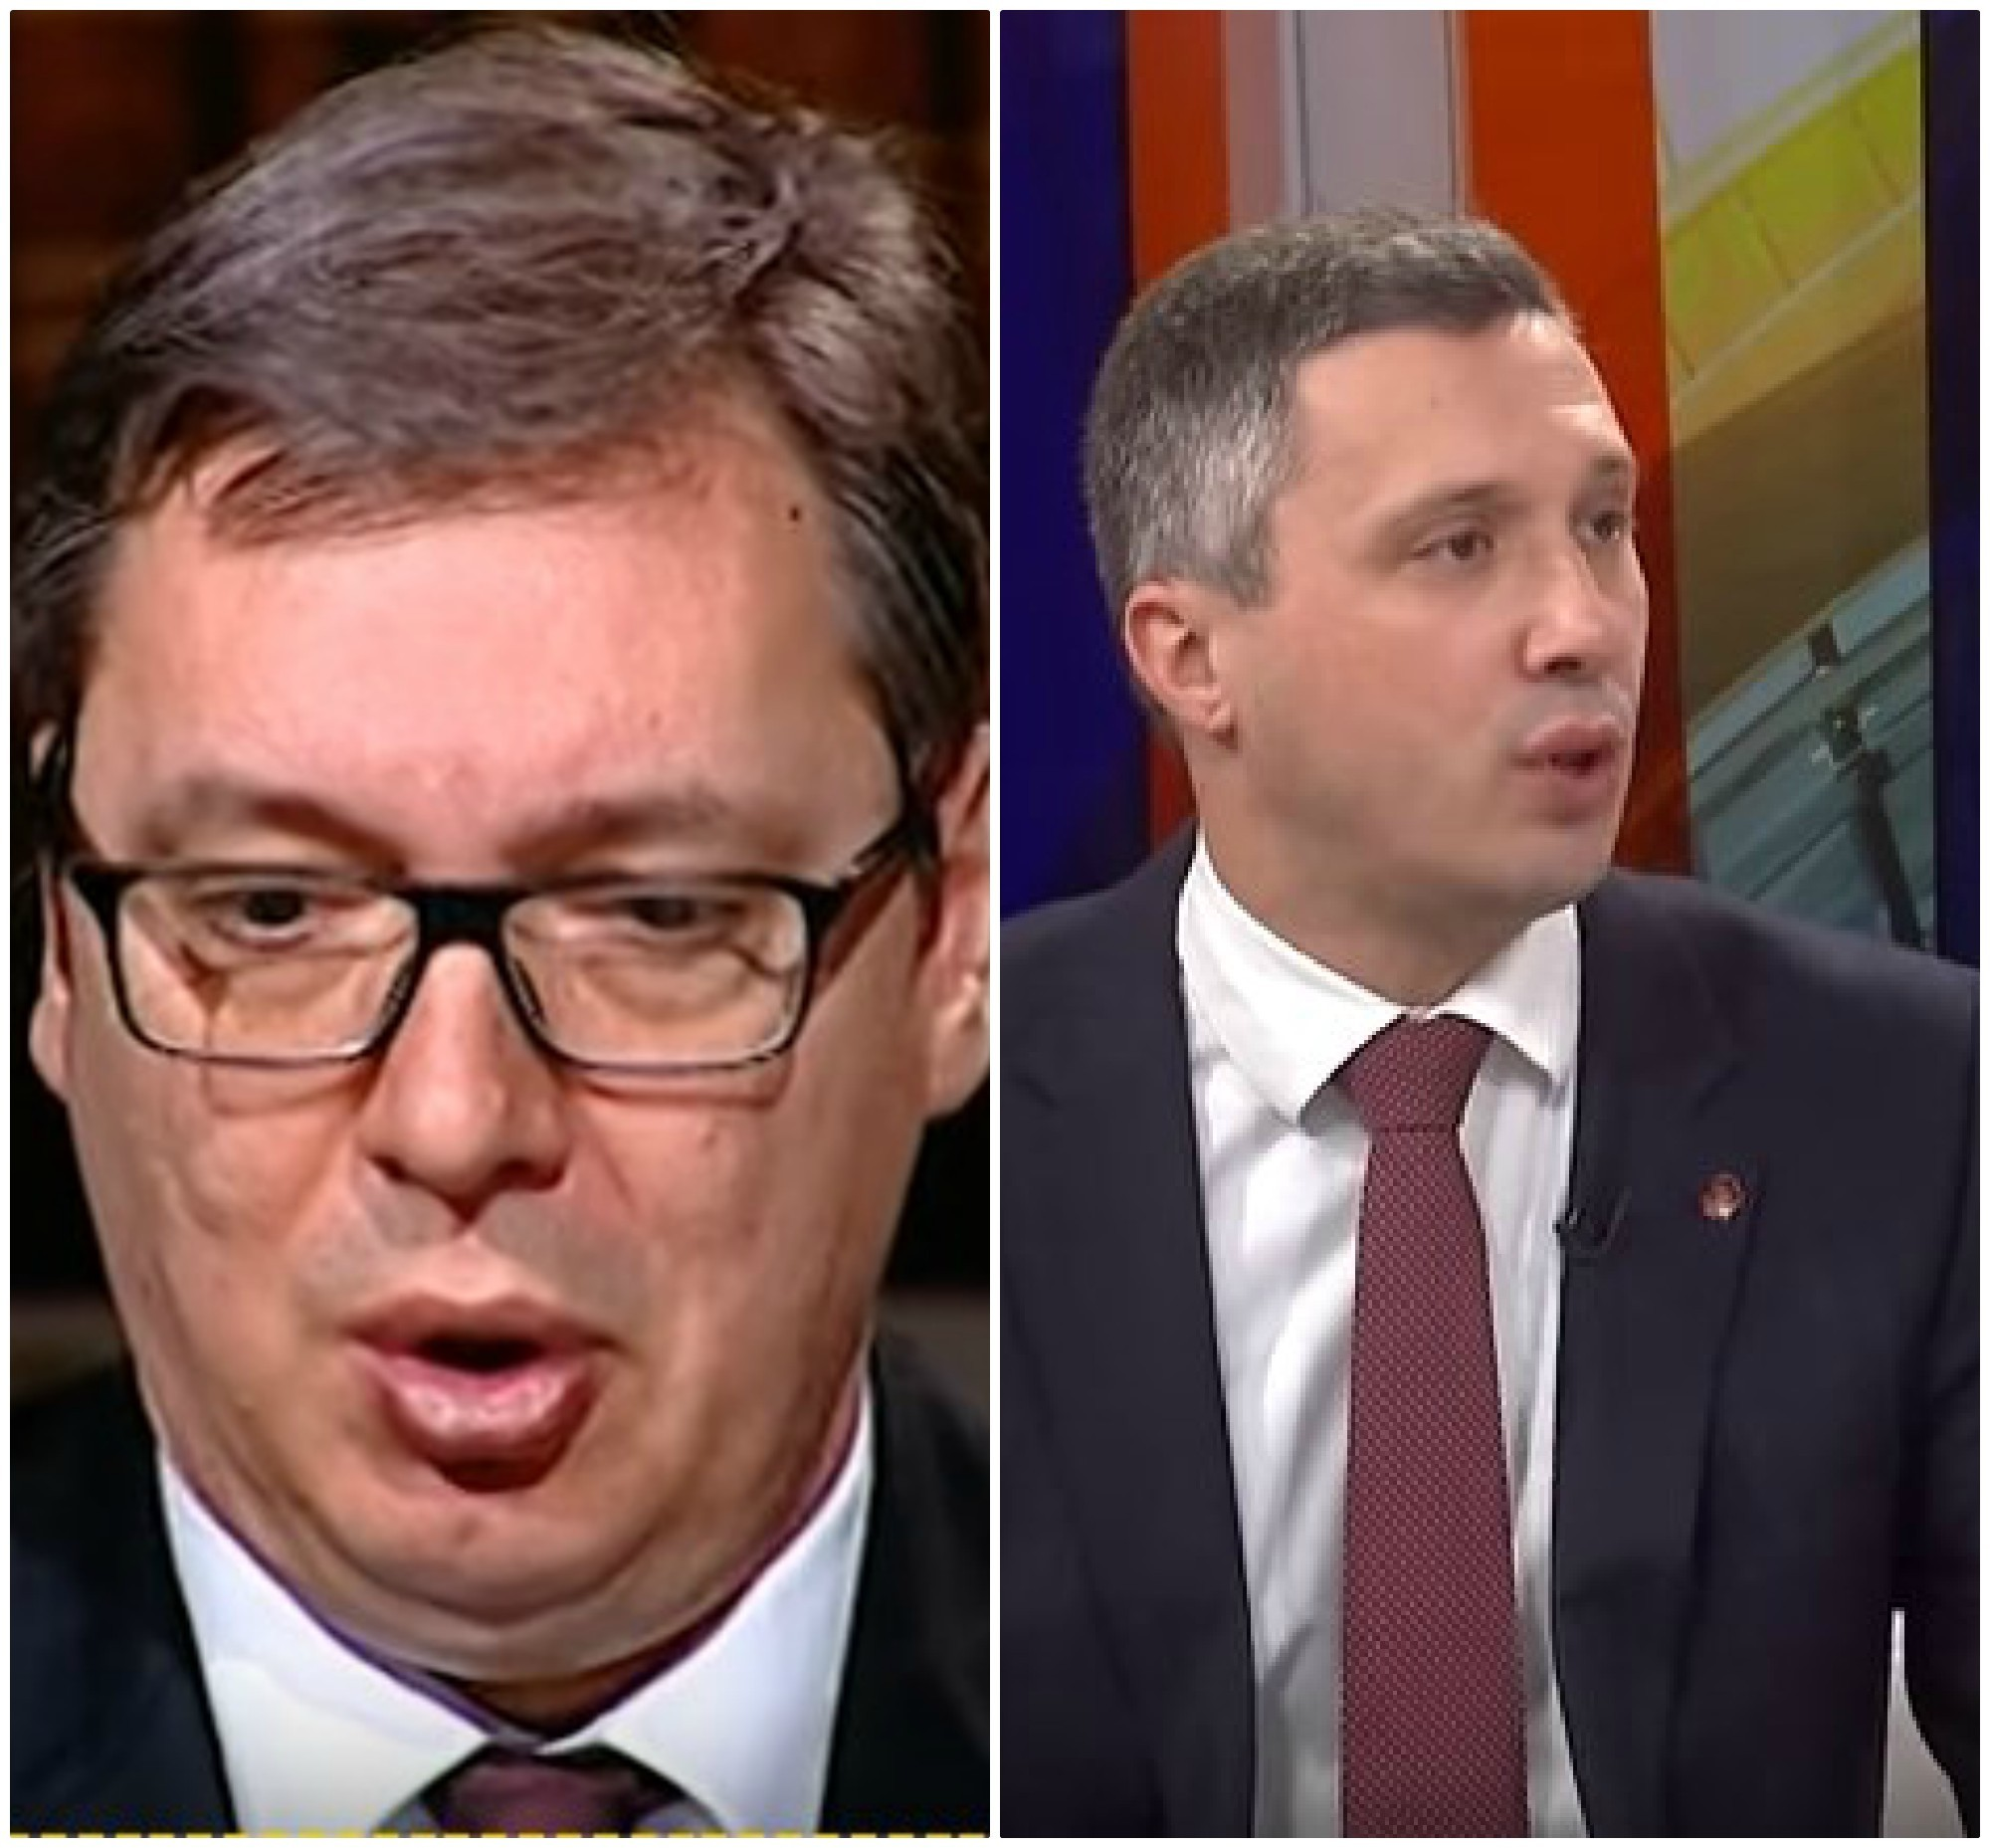 Vucic accuses opposition of treason, conspiracy, violence against women…